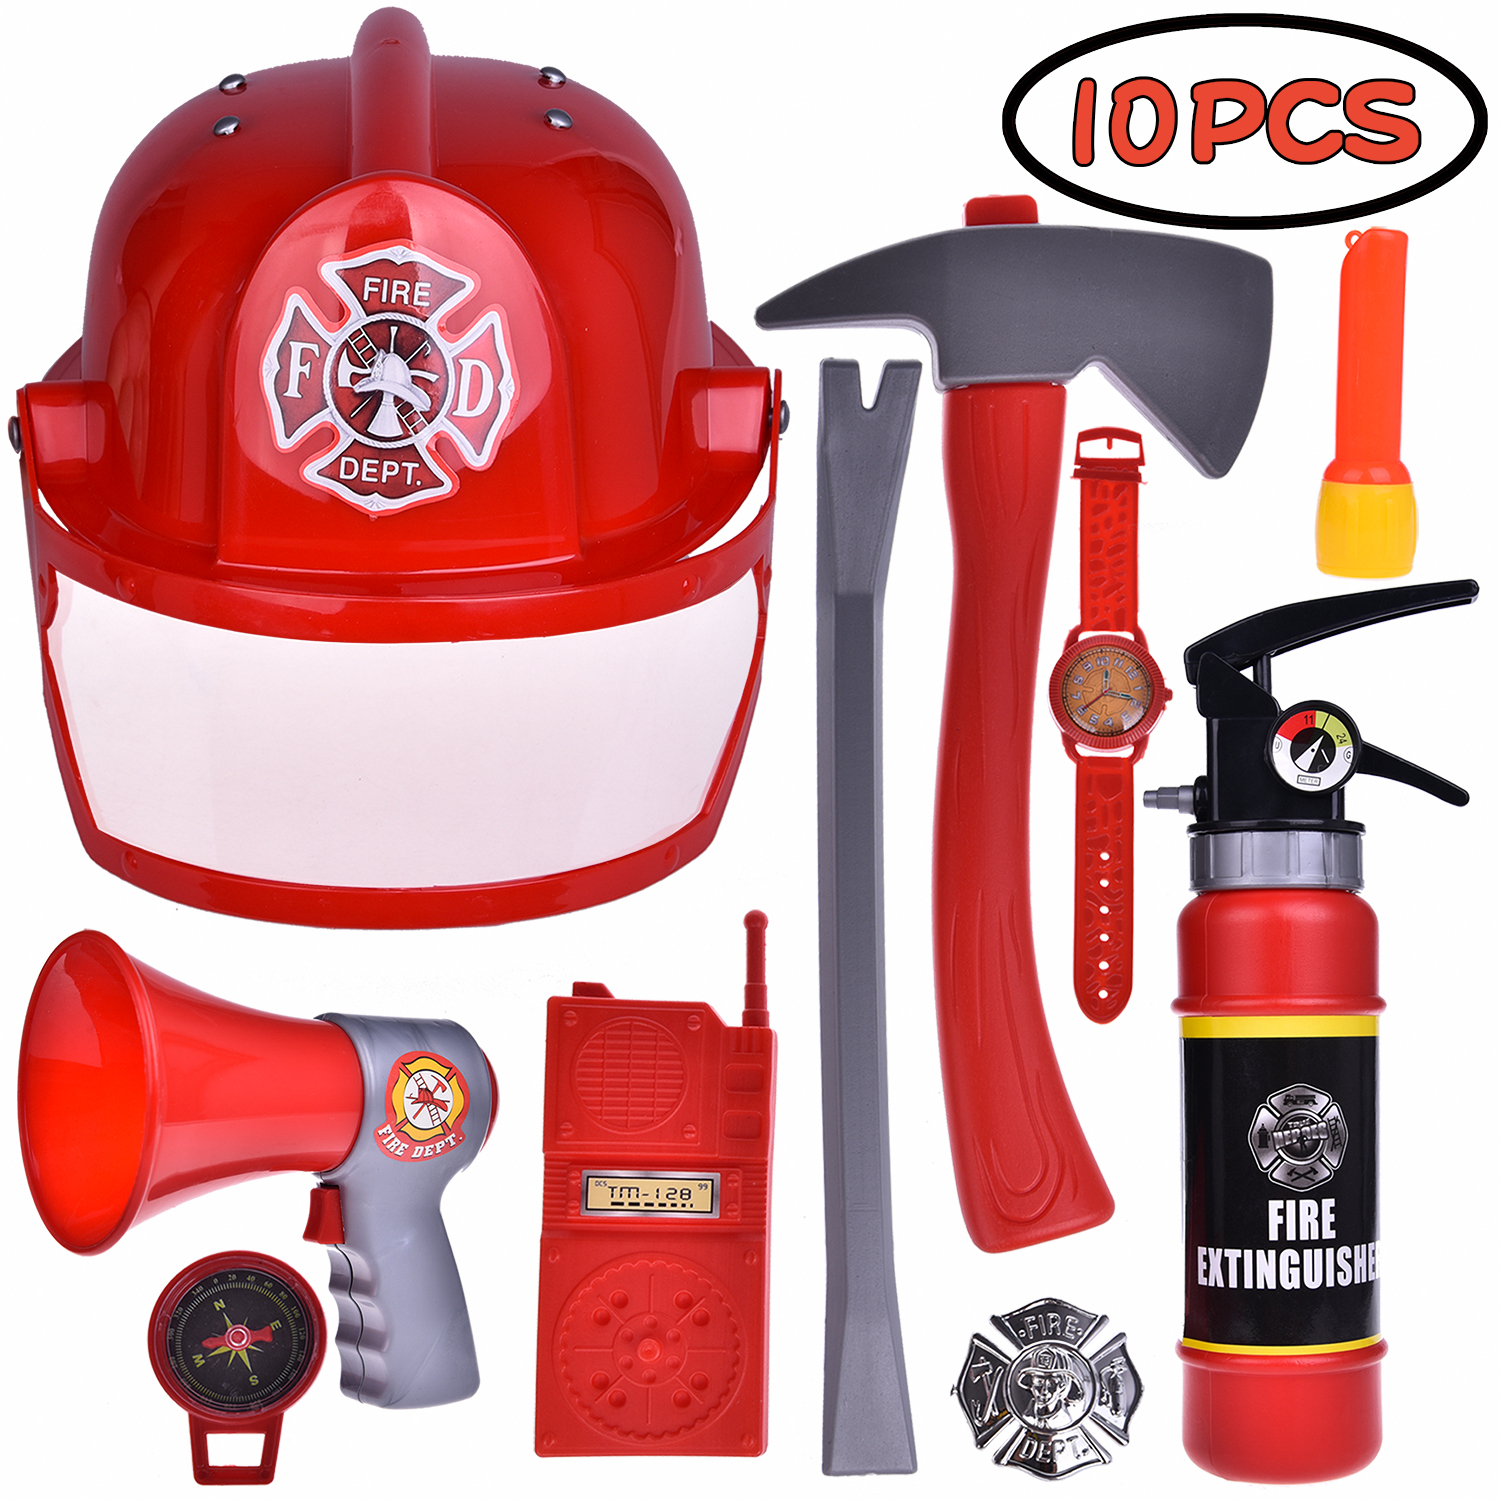 Fireman Gear Firefighter Costume Role Play Toy Set for Kids with Helmet, Megaphones, Extinguisher, Flashlight,Helmet and Accessories F-177